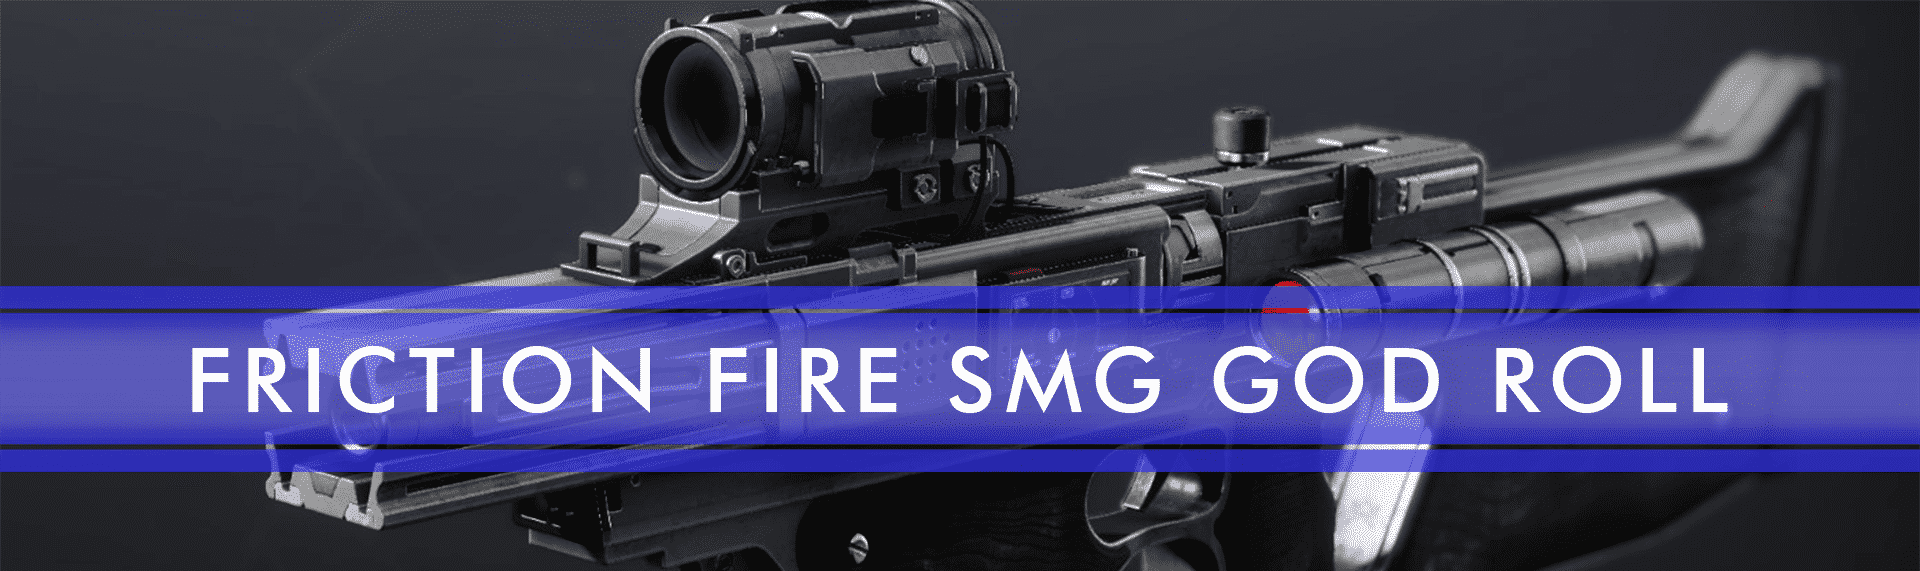 friction fire smg god roll